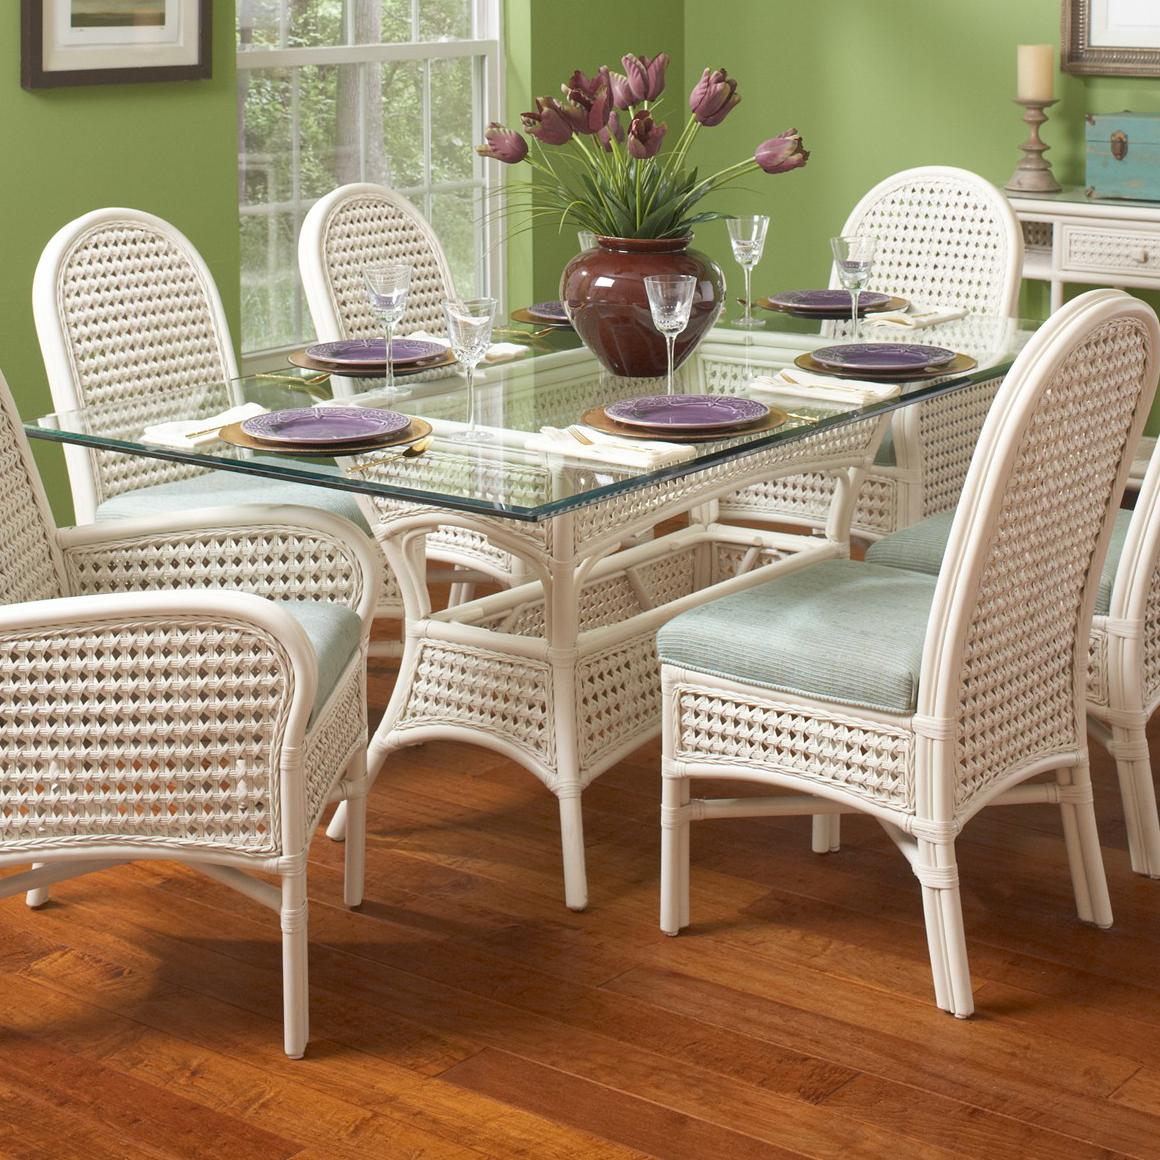 Braxton Culler Captiva Tropical Rectangular Glass Table With Wicker Base